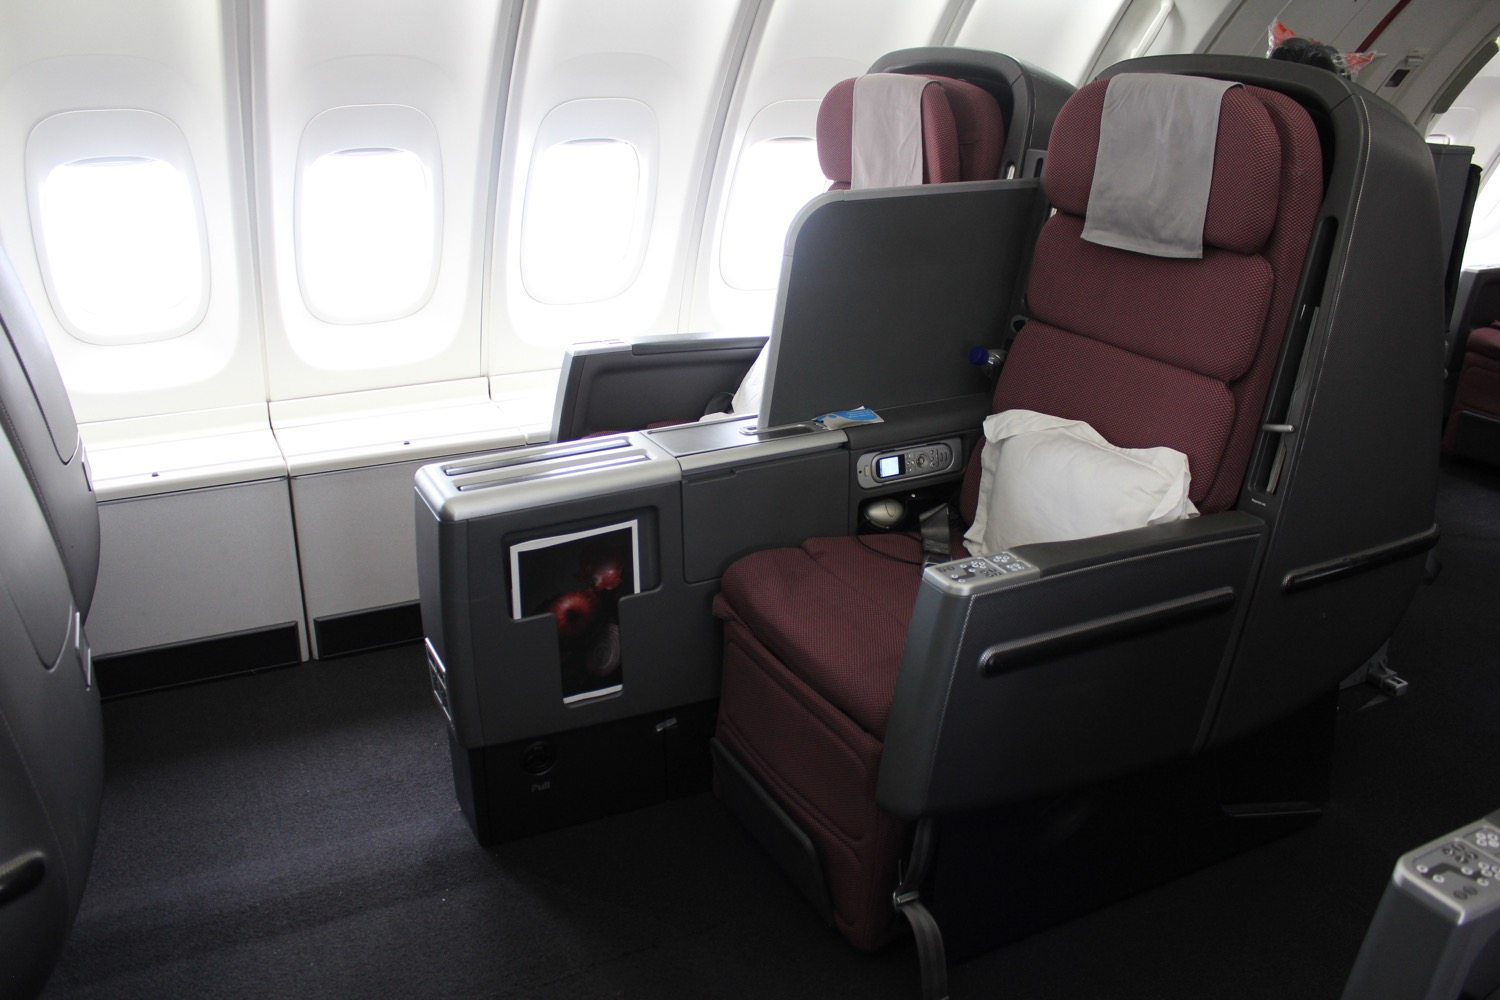 Qantas Business Class 747 Review - 41